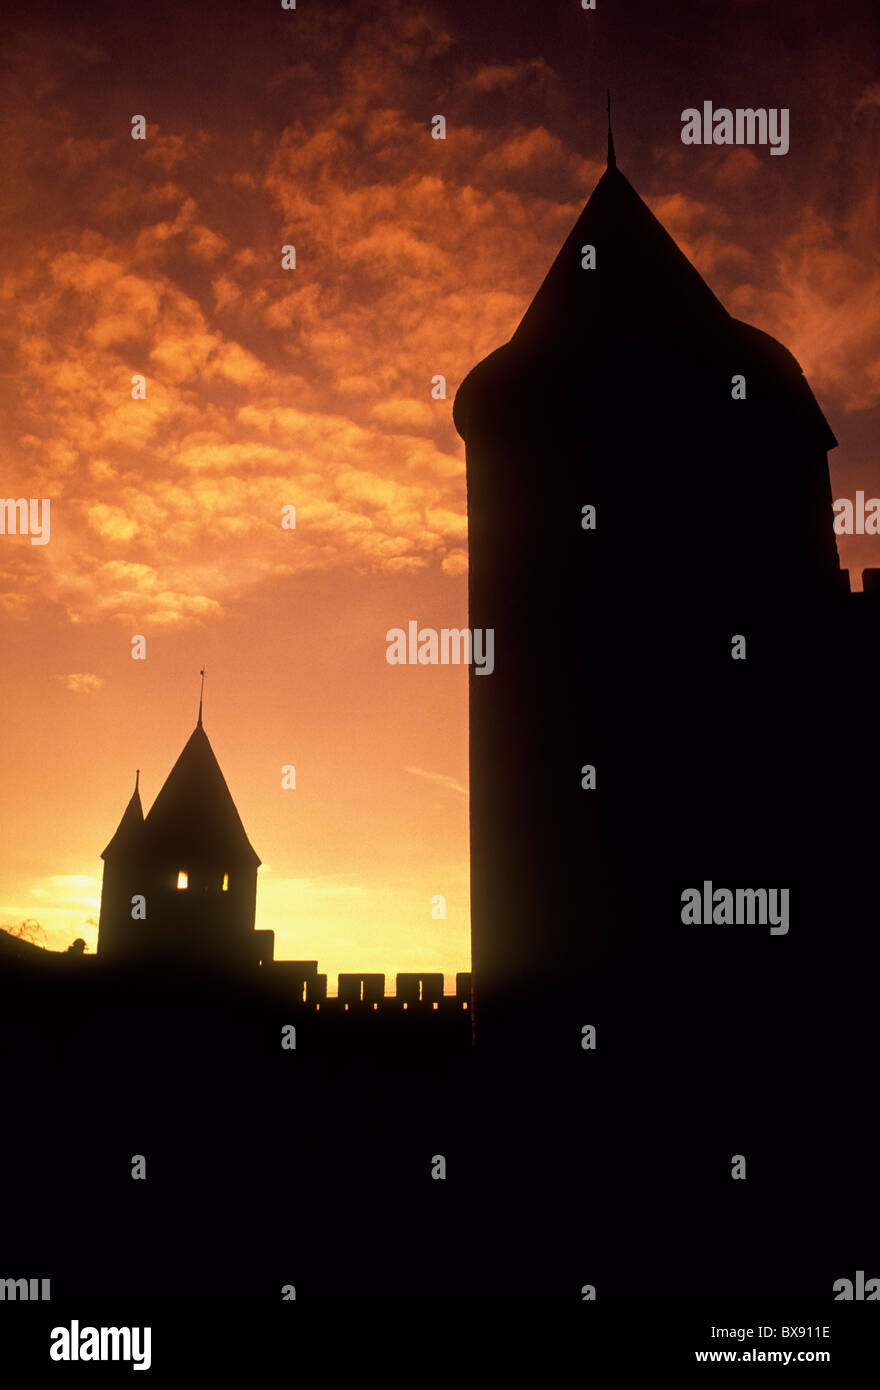 walled town, feudal stronghold, citadel, military fortress, Cathar Wars, Albigensian Crusades, La Cite, Carcassonne, - Stock Image